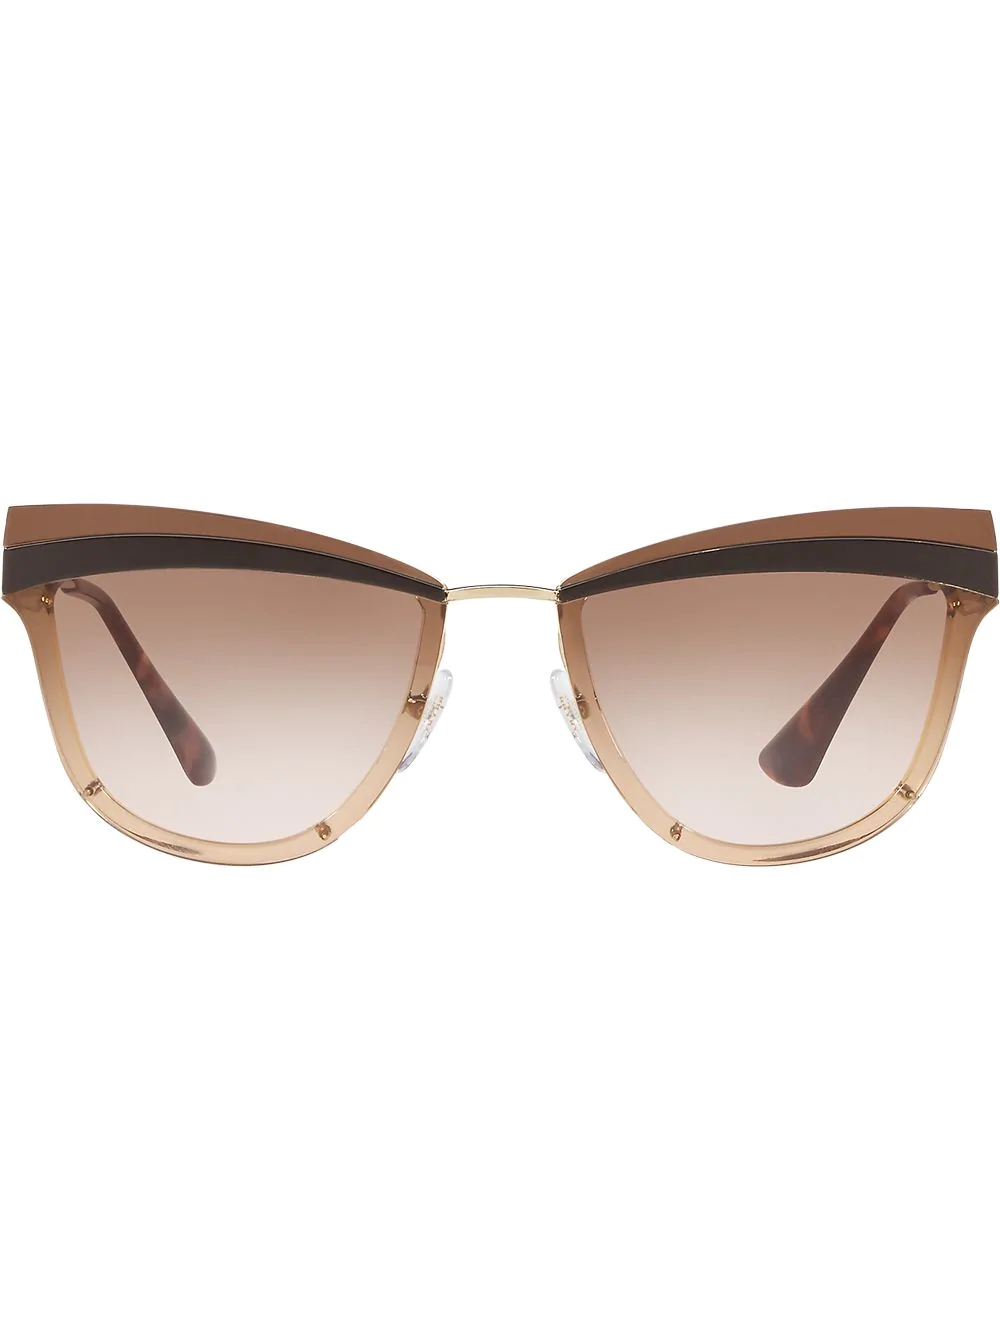 ba61dc86f1ac Prada Eyewear Cat-Eye Shaped Sunglasses - Farfetch In Gold | ModeSens